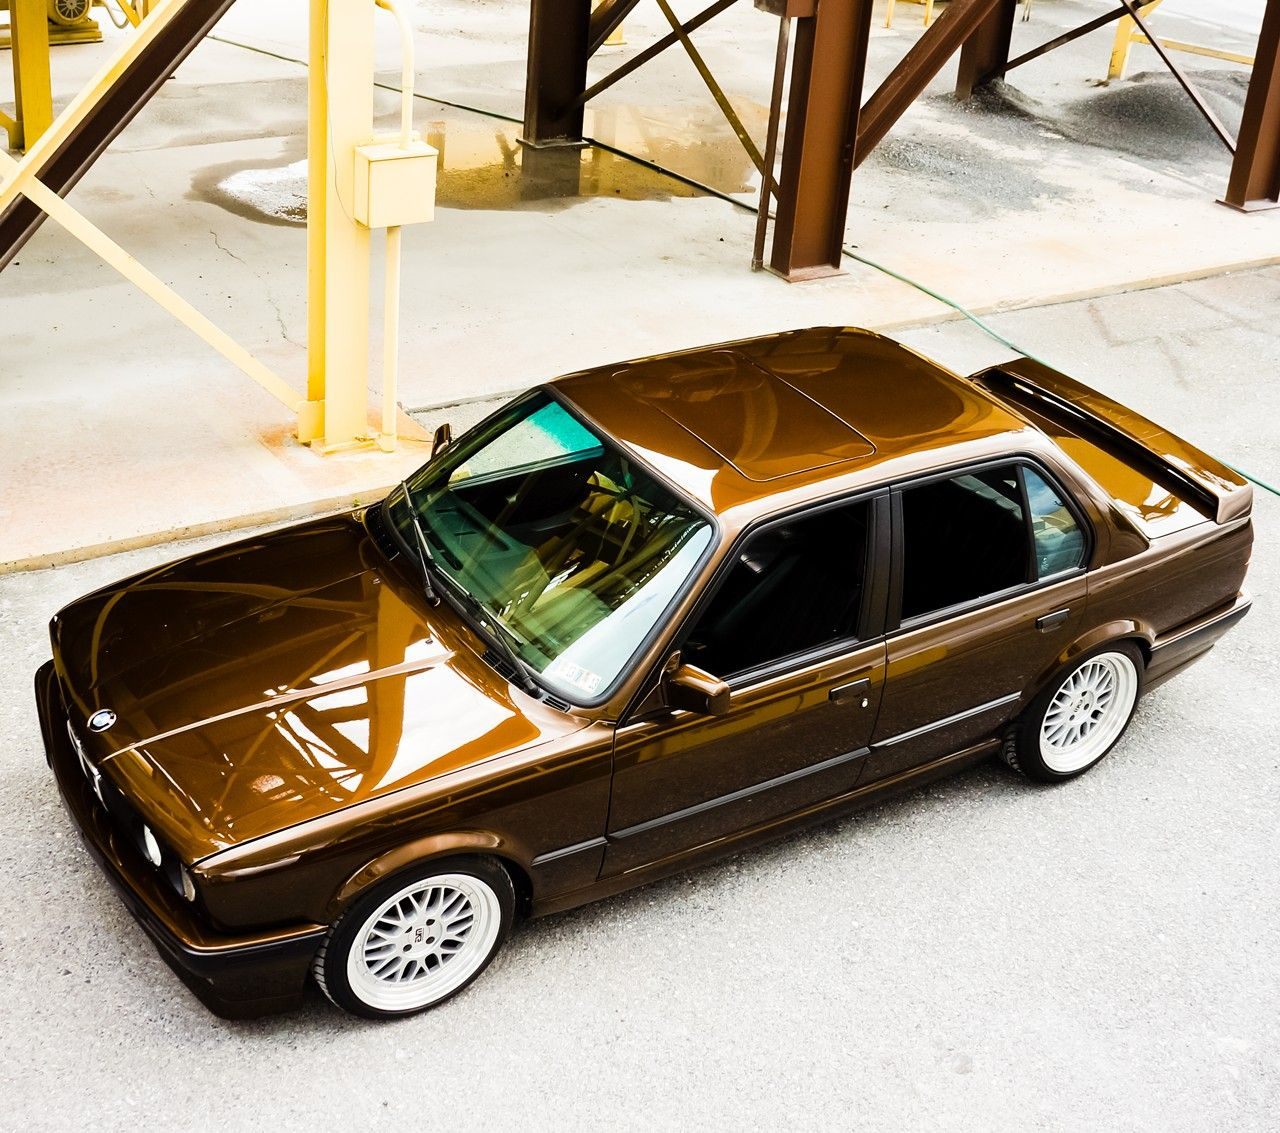 BMW E30, this is the color Ryan wants and I have to say that it doesn't look that bad